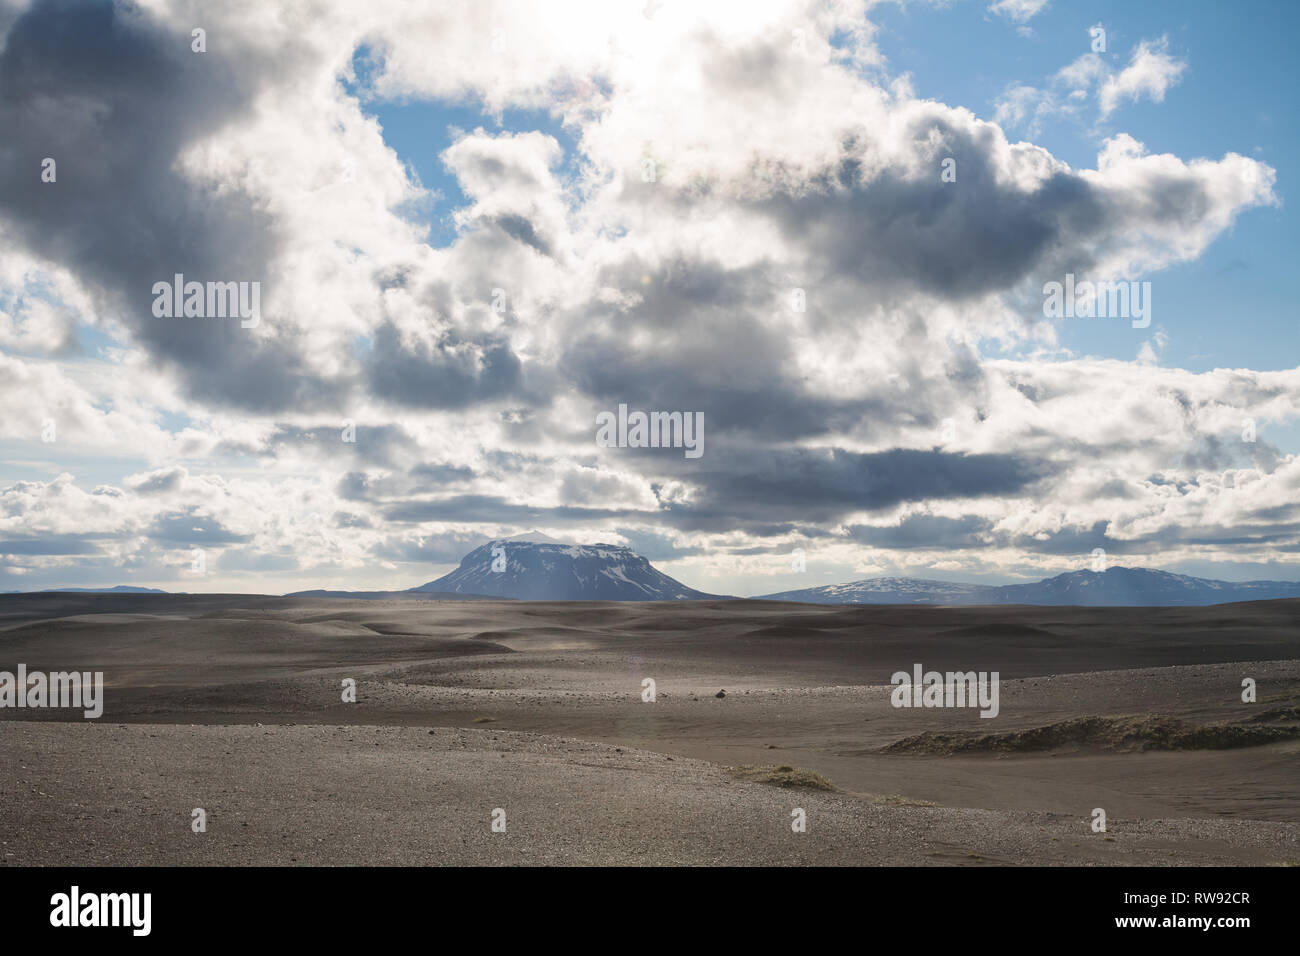 Herdubreid tuya (flat-topped steep-sided volcano) mountain in Ódáðahraun lava field Highlands of Iceland Northeast Iceland, Scandinavia, with lens fla - Stock Image